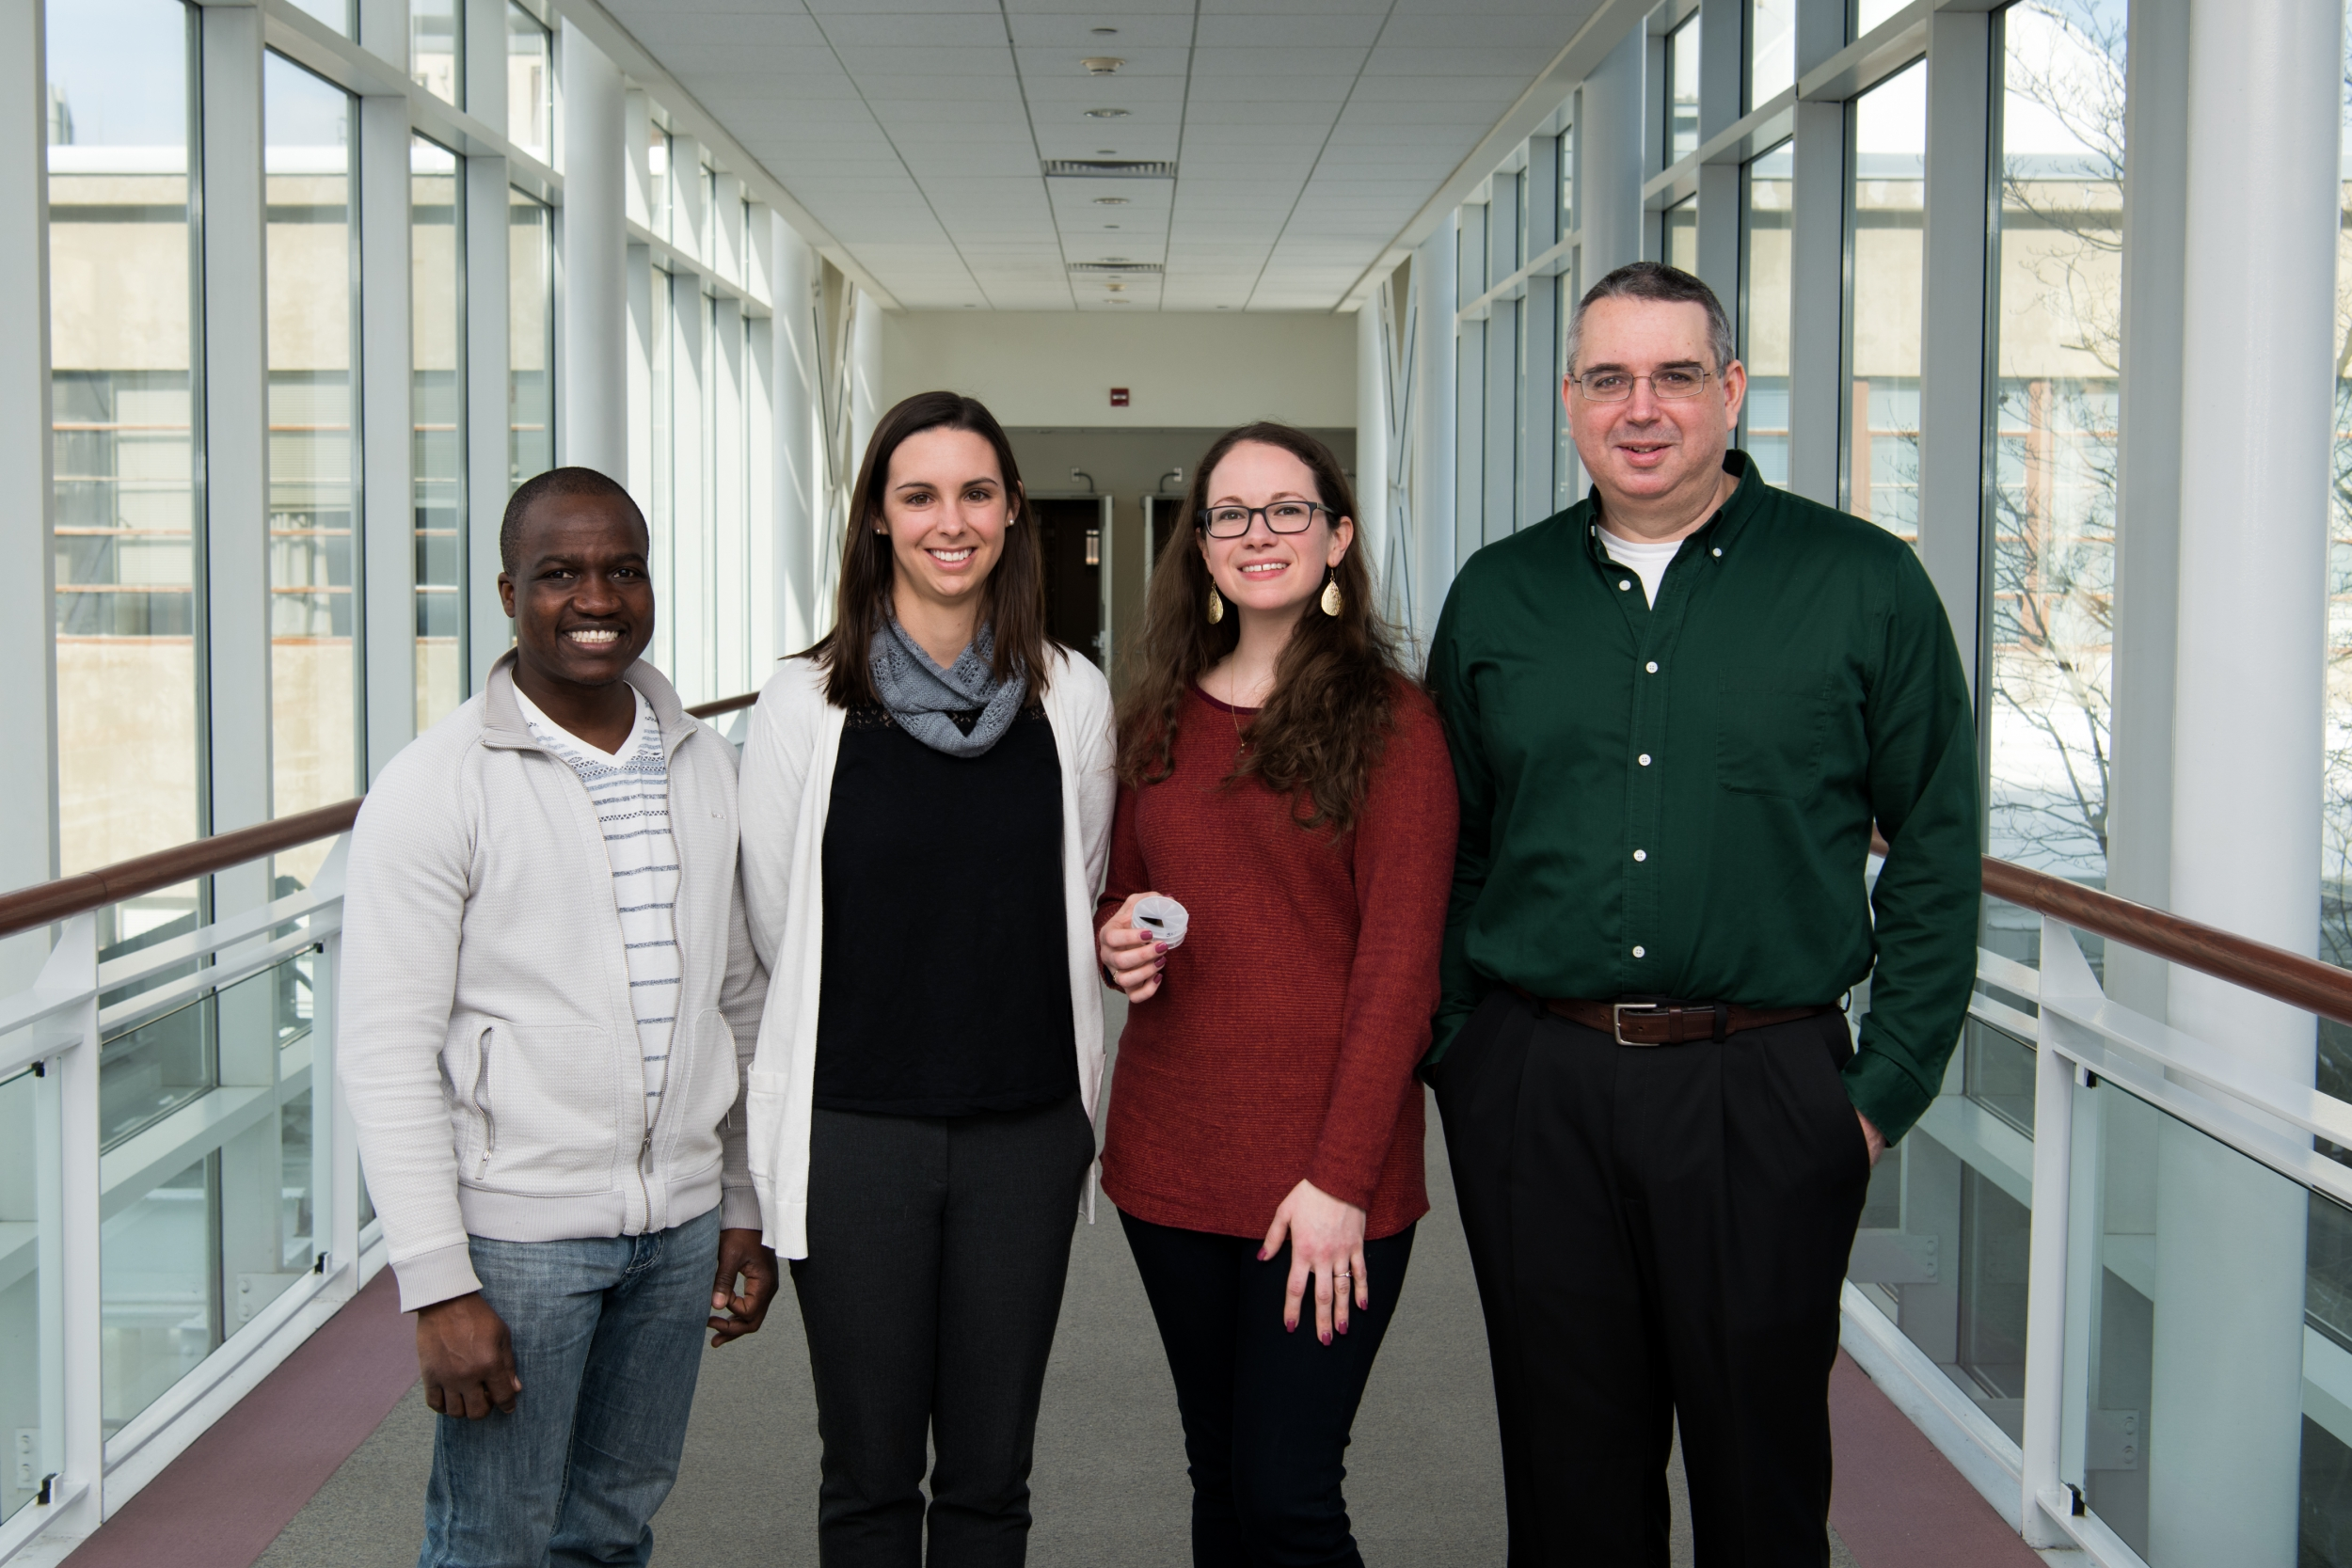 The team of four researchers pose for a group photo in a hallway